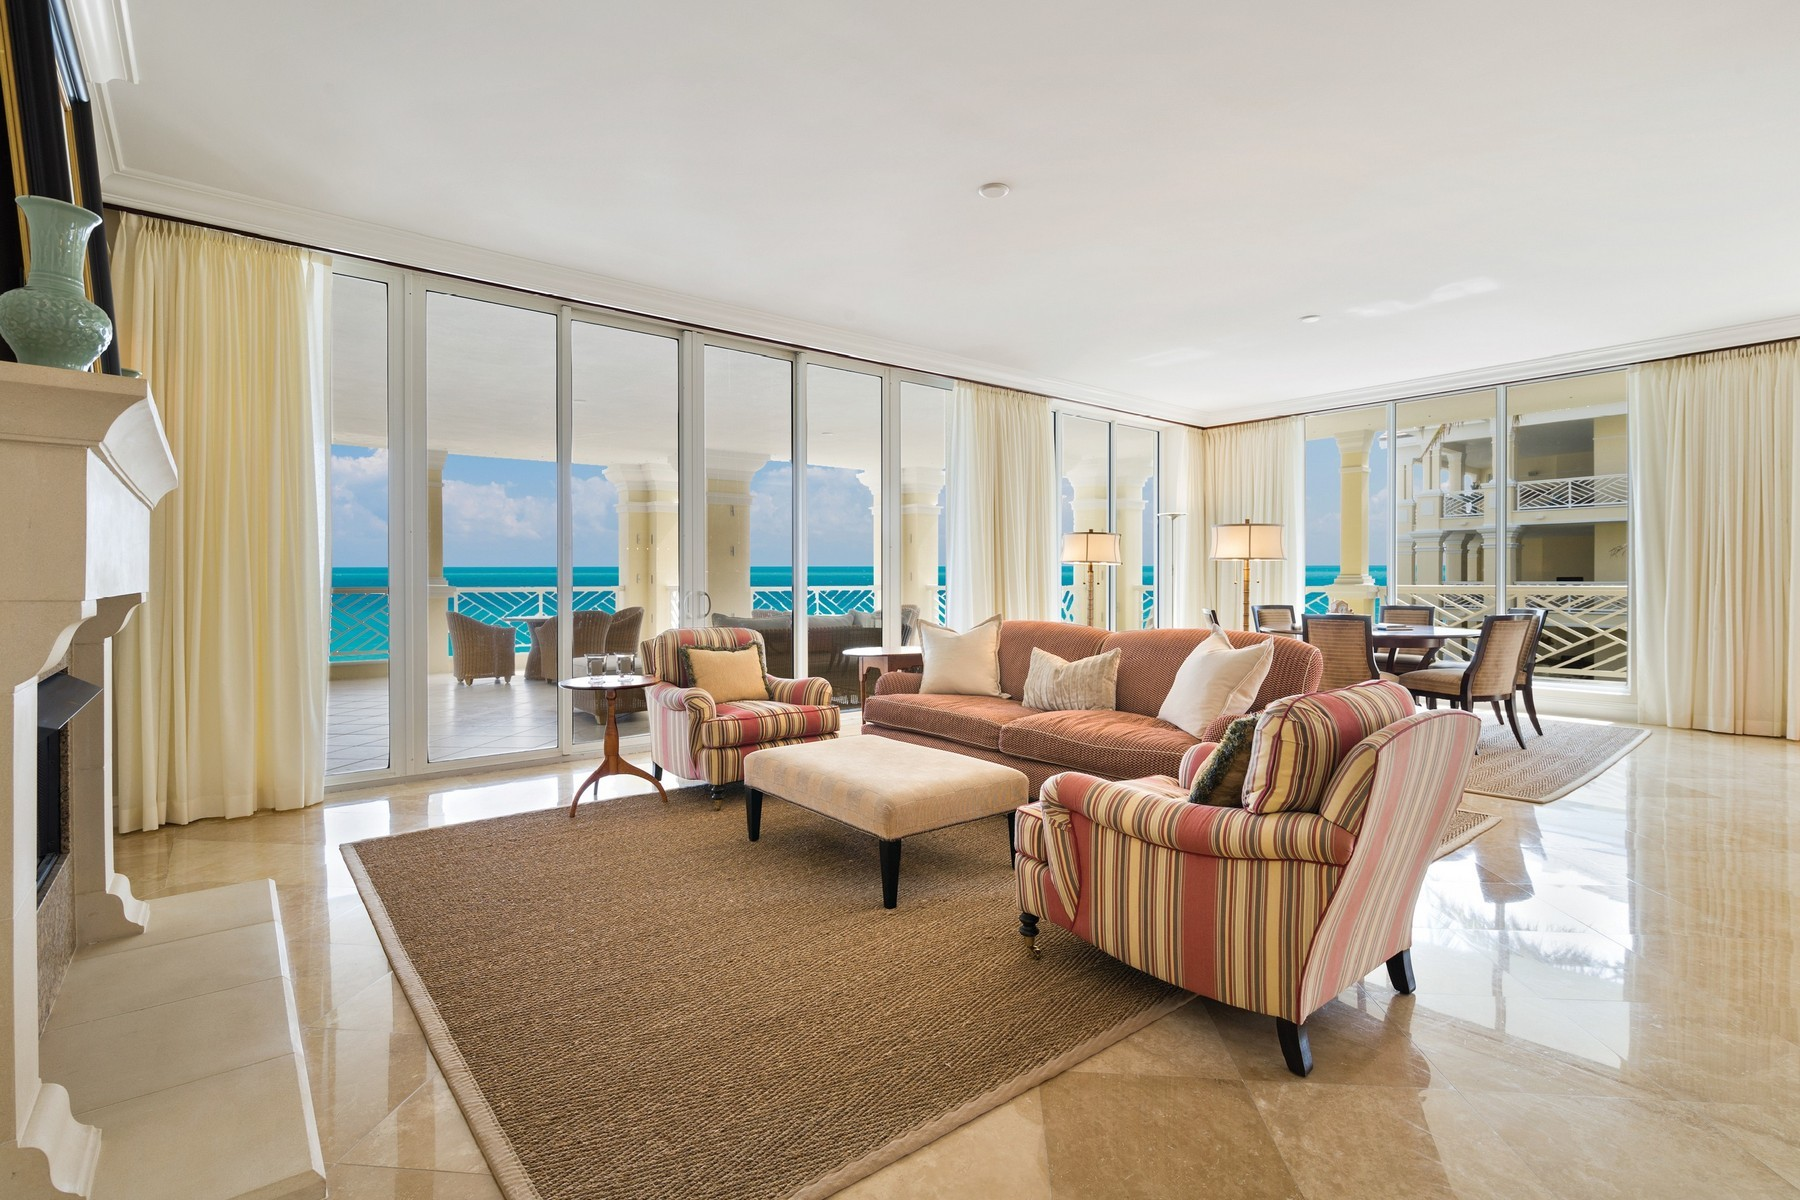 Property para Venda às Luxurious Oceanfront Living 200 Beachview Dr #3S Vero Beach, Florida 32963 Estados Unidos